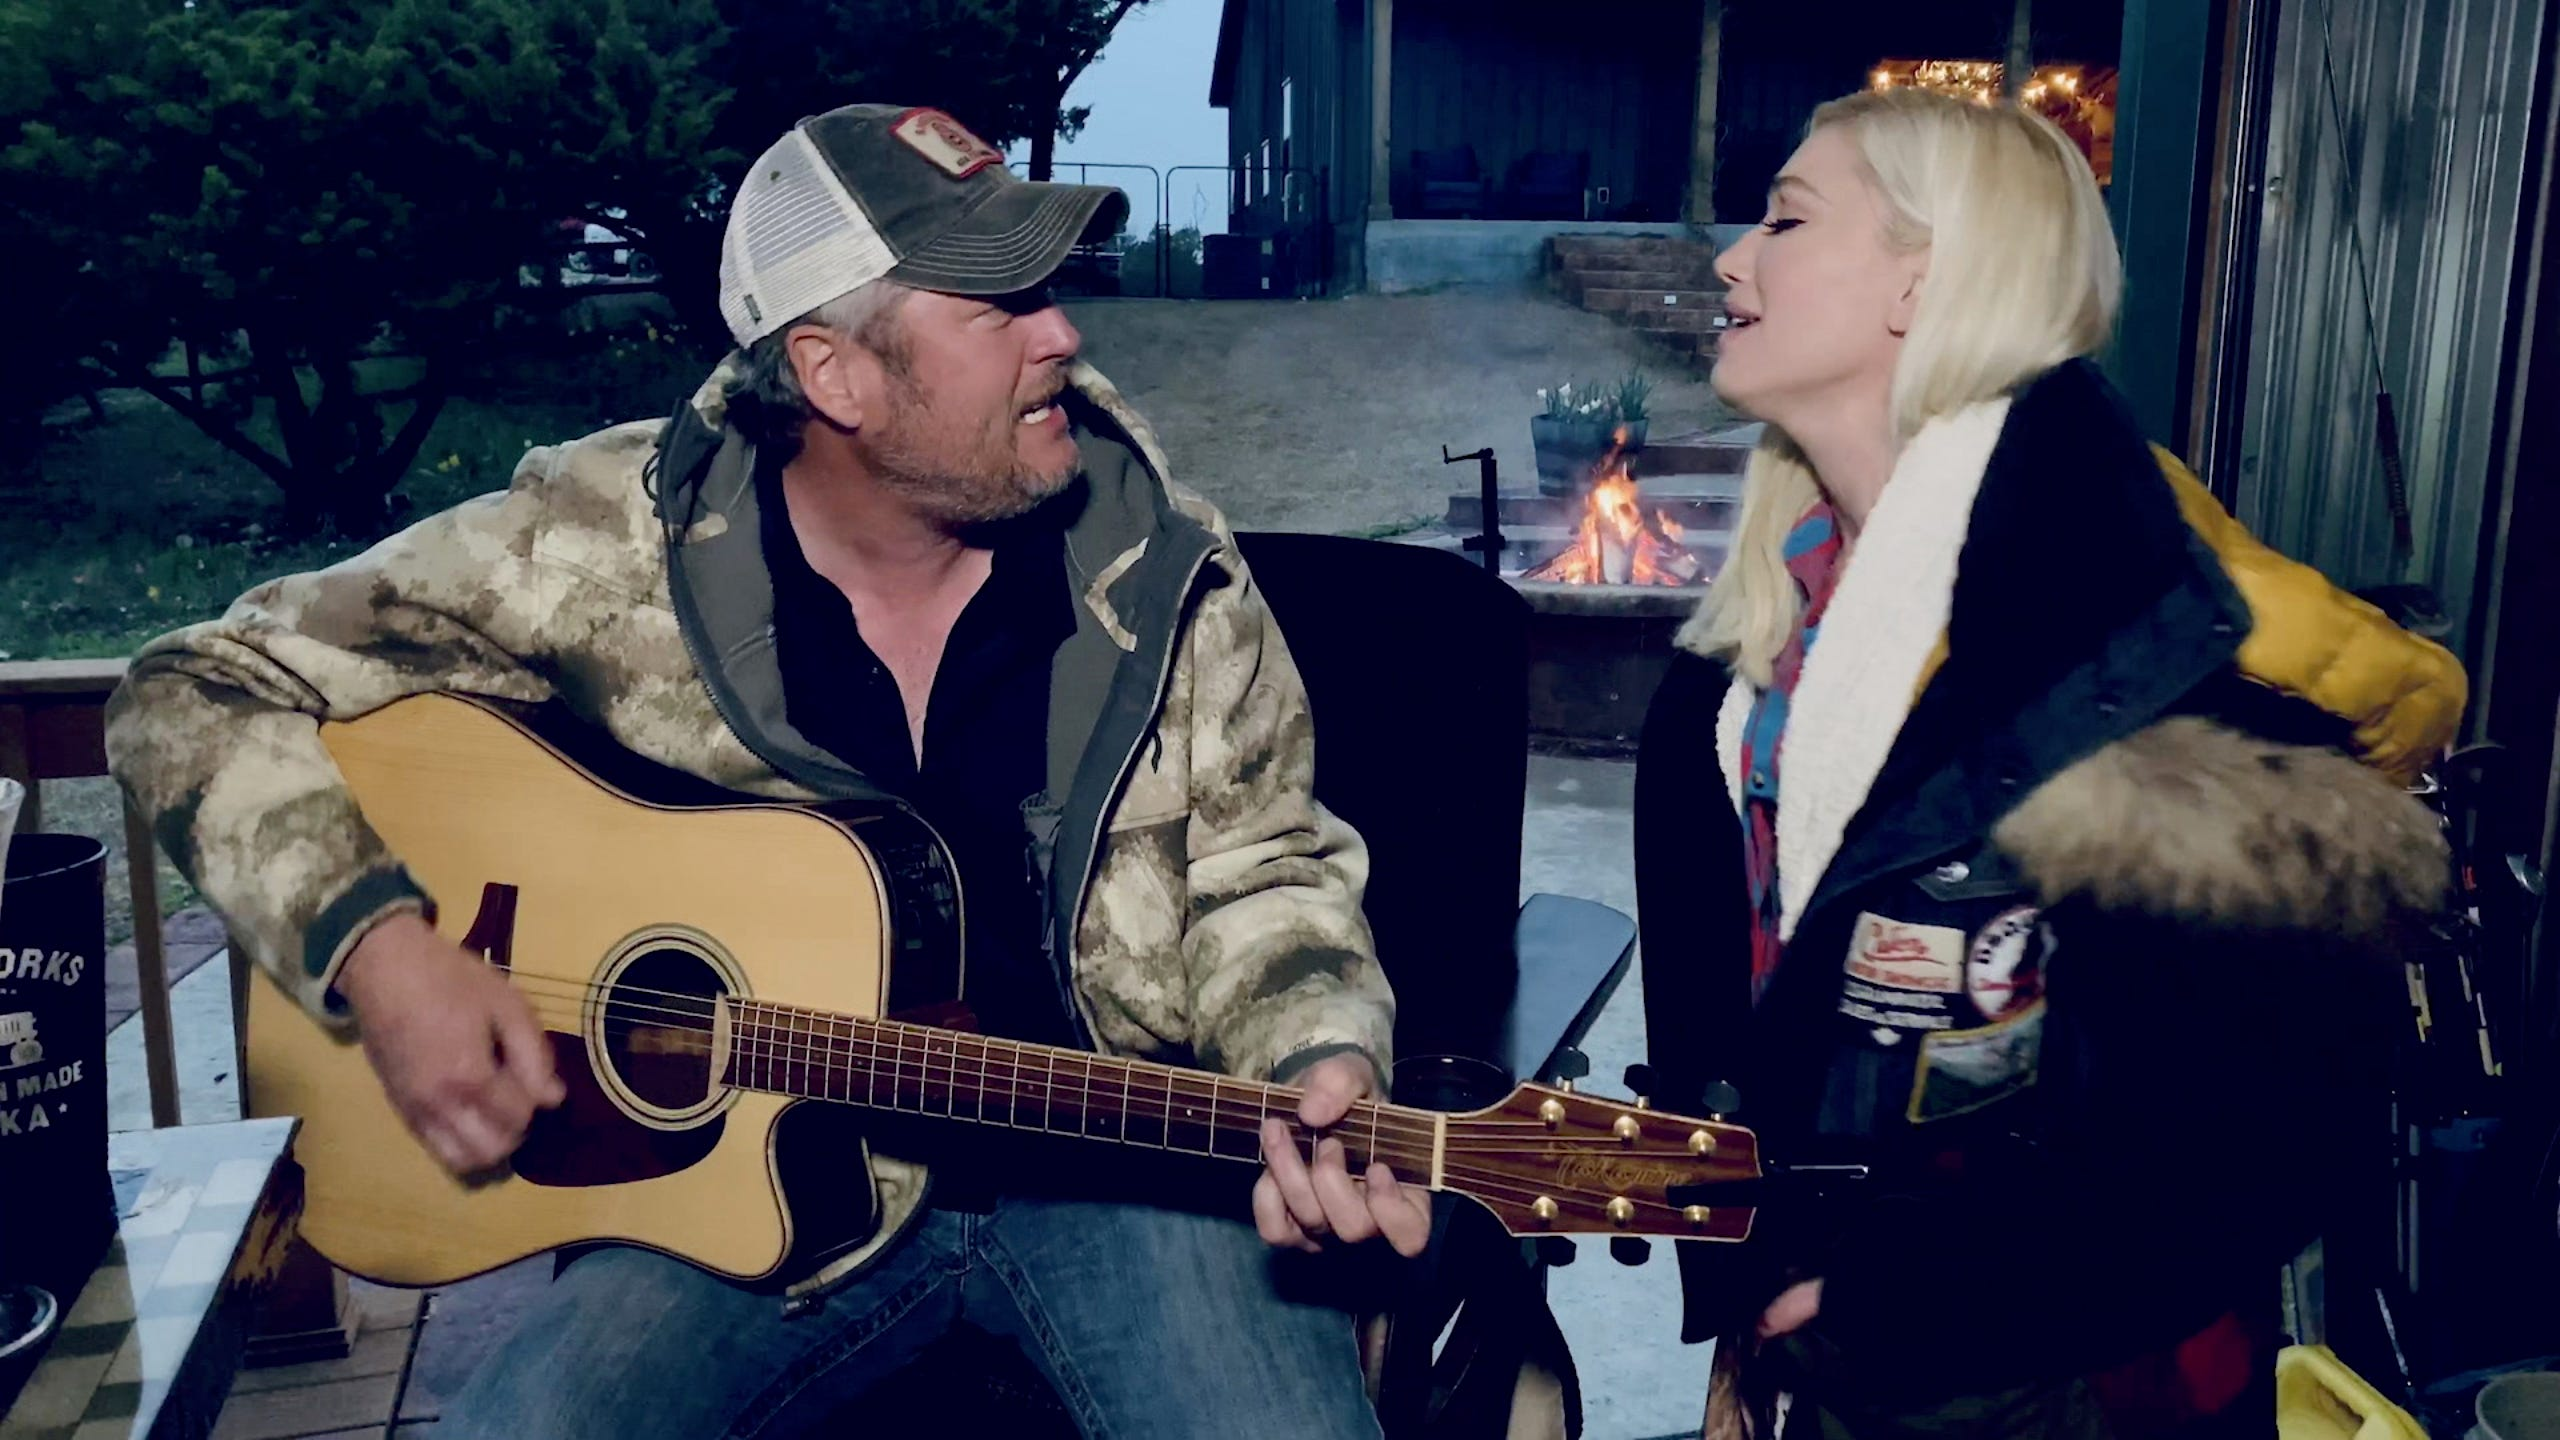 ACM s  Our Country : Blake Shelton and Gwen Stefani sing after  drinking all day